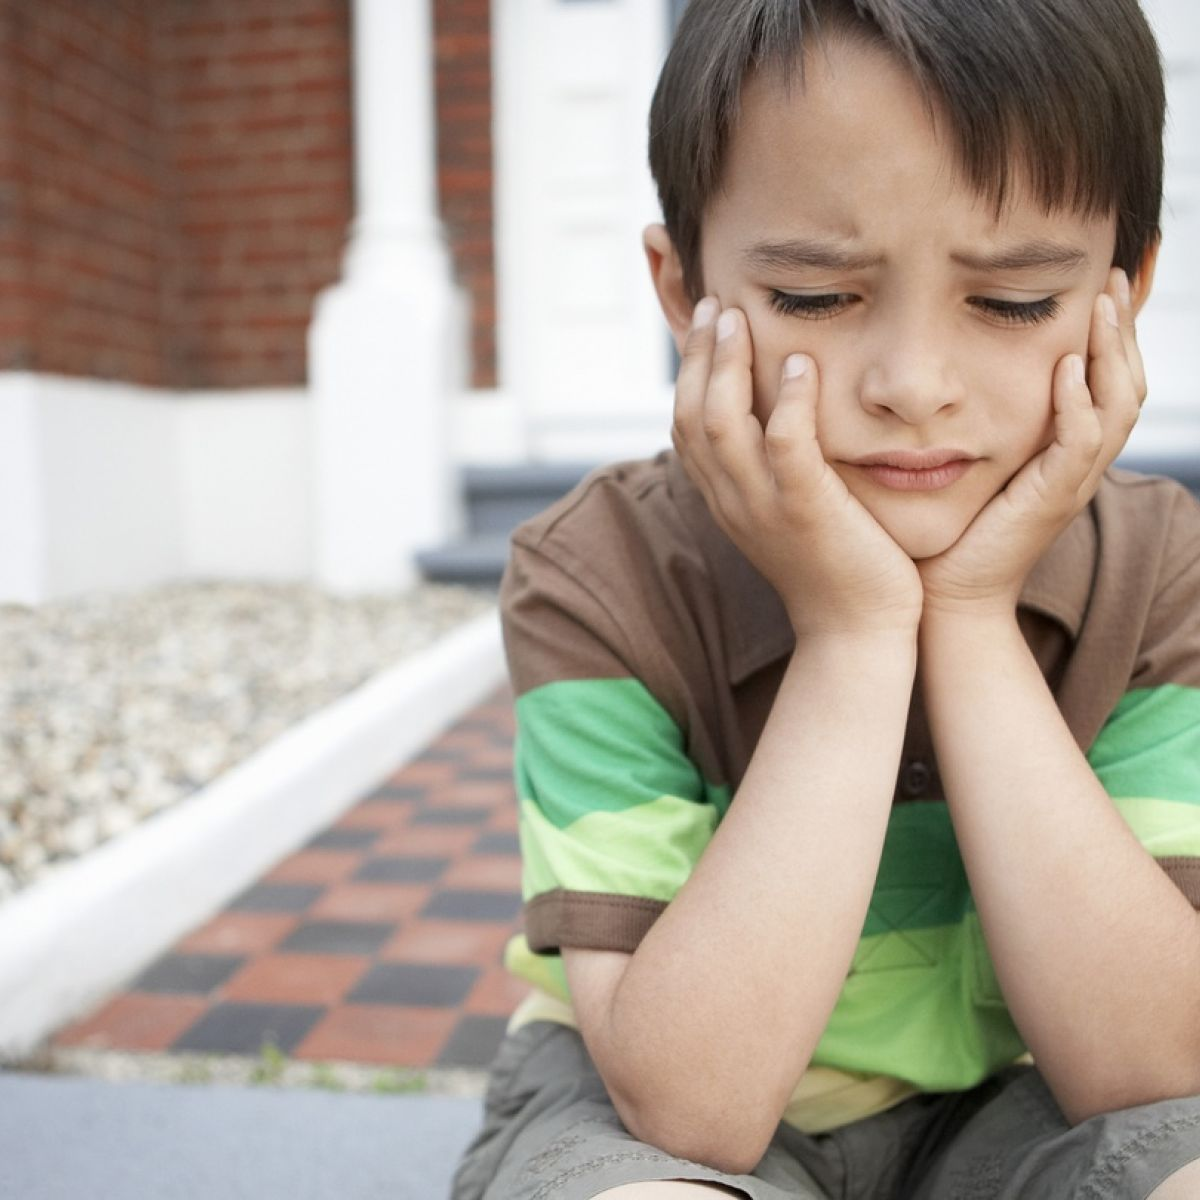 Ask the expert: My 7-year-old son says he hates himself